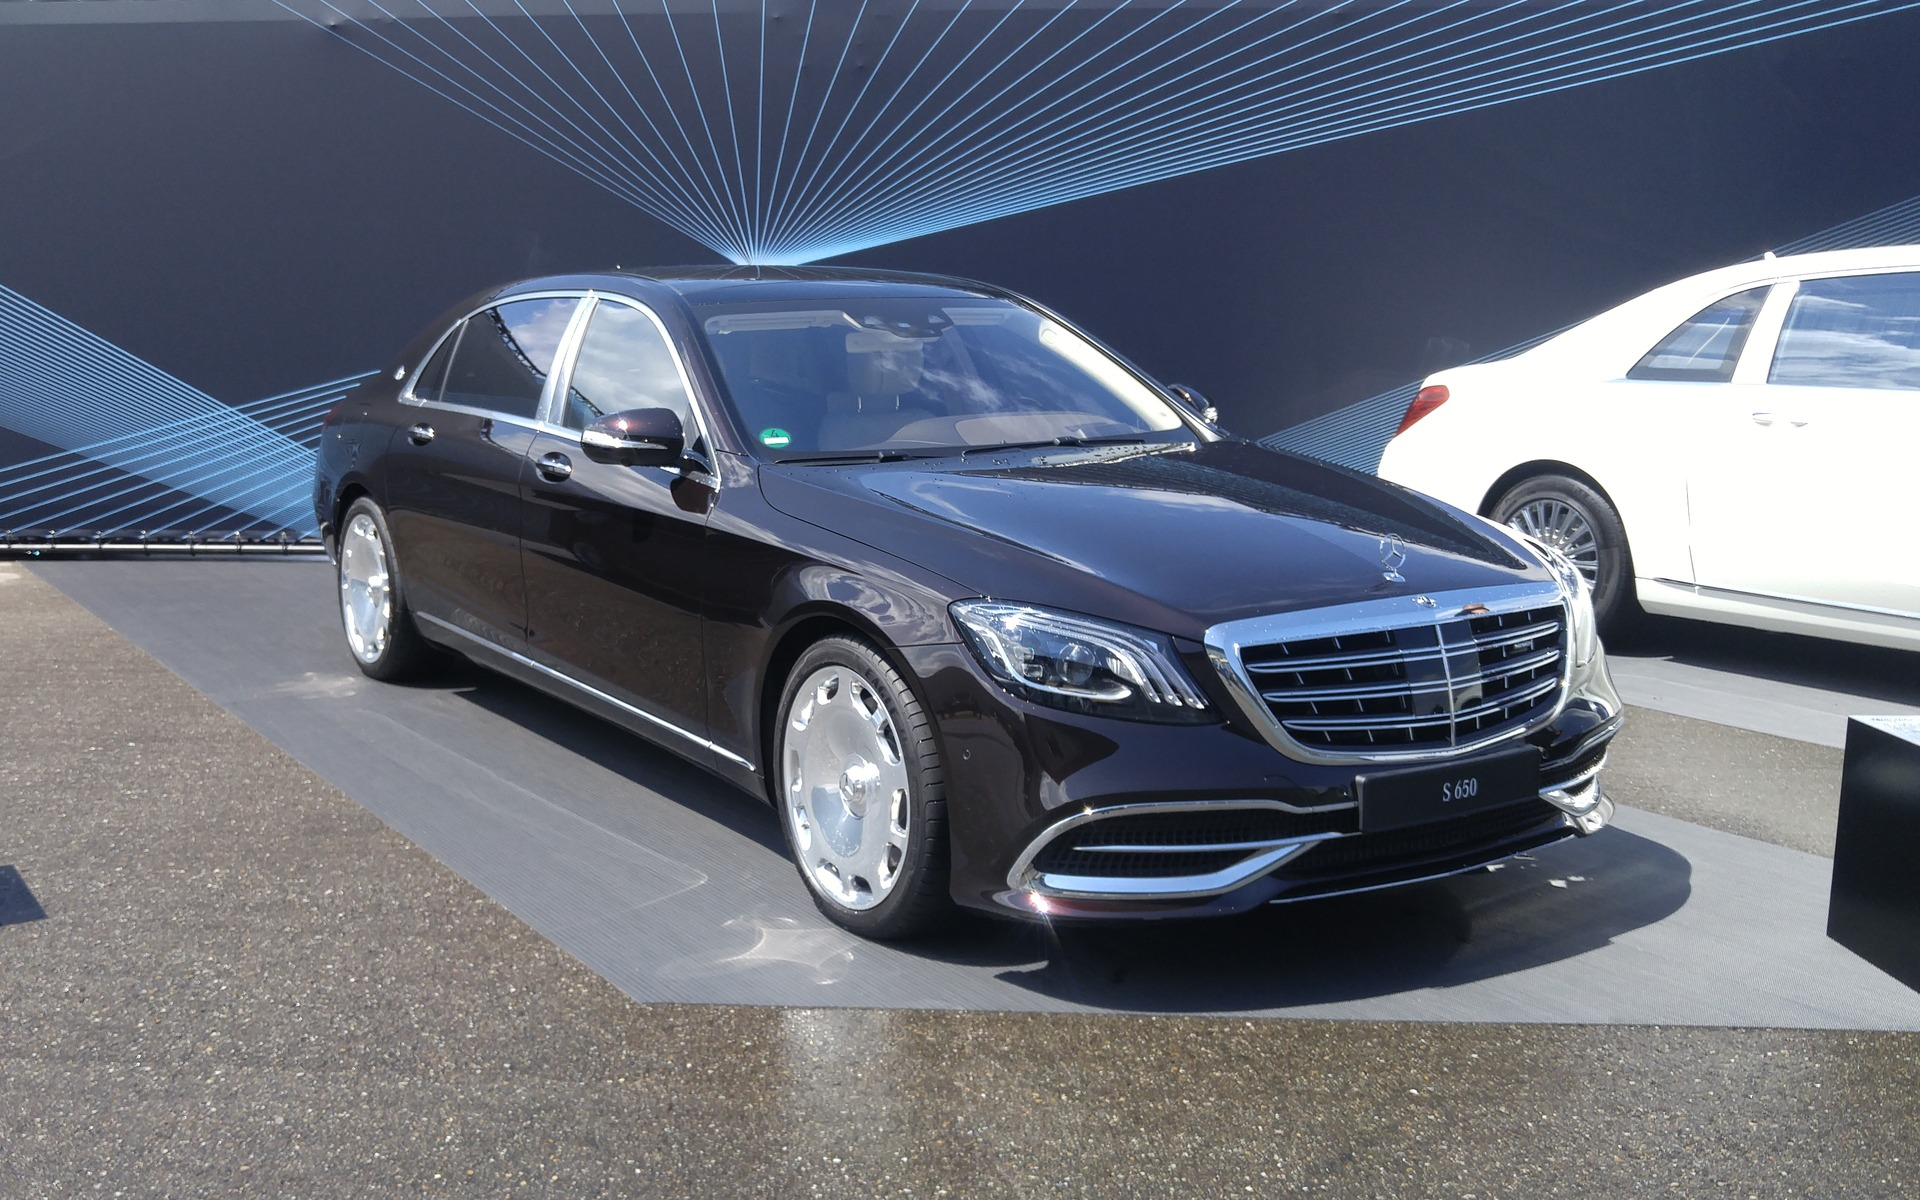 2018 mercedes-benz s-class: in search of perfection - 22/23